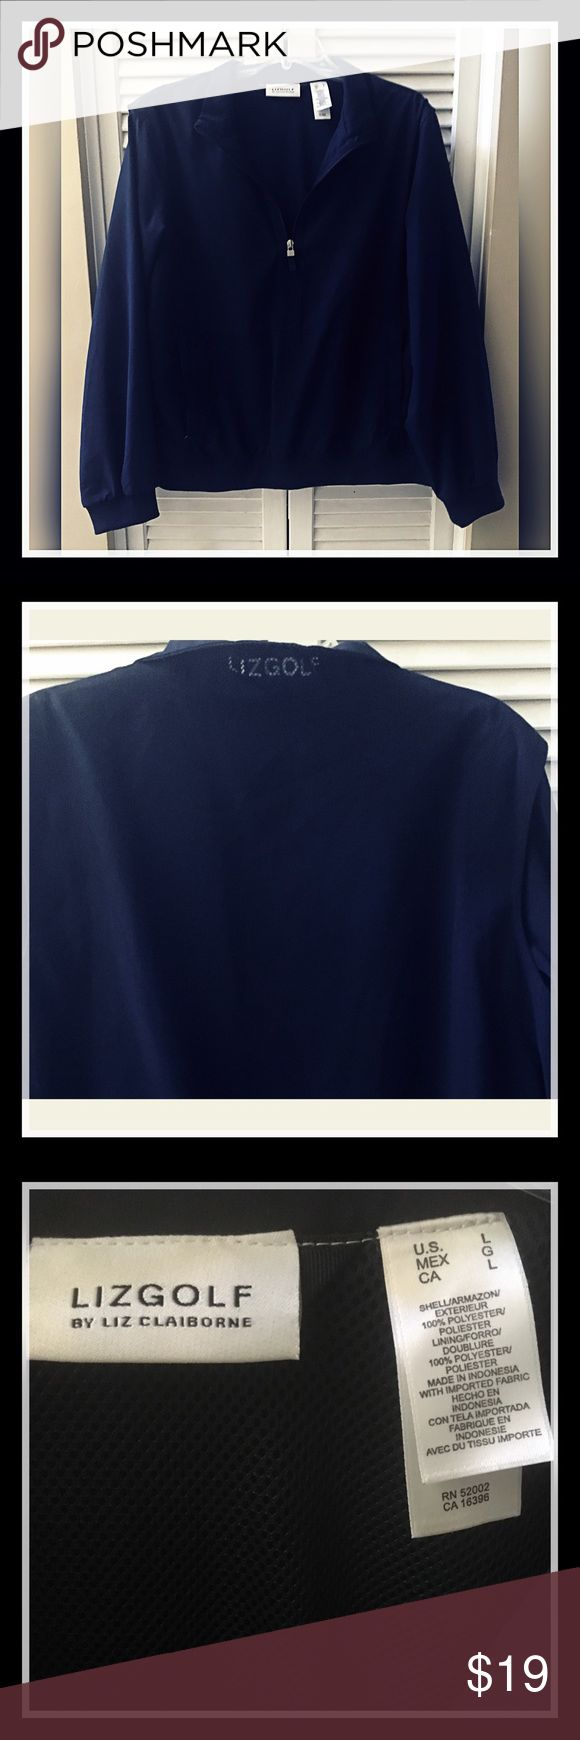 Liz Golf by Liz Claiborne - Sz L Navy Pullover Liz Golf by Liz Claiborne - Sz L Navy Pullover Fully Lined Windbreaker. Worn once! Excellent used condition, open to offers 😃 Liz Claiborne Jackets & Coats